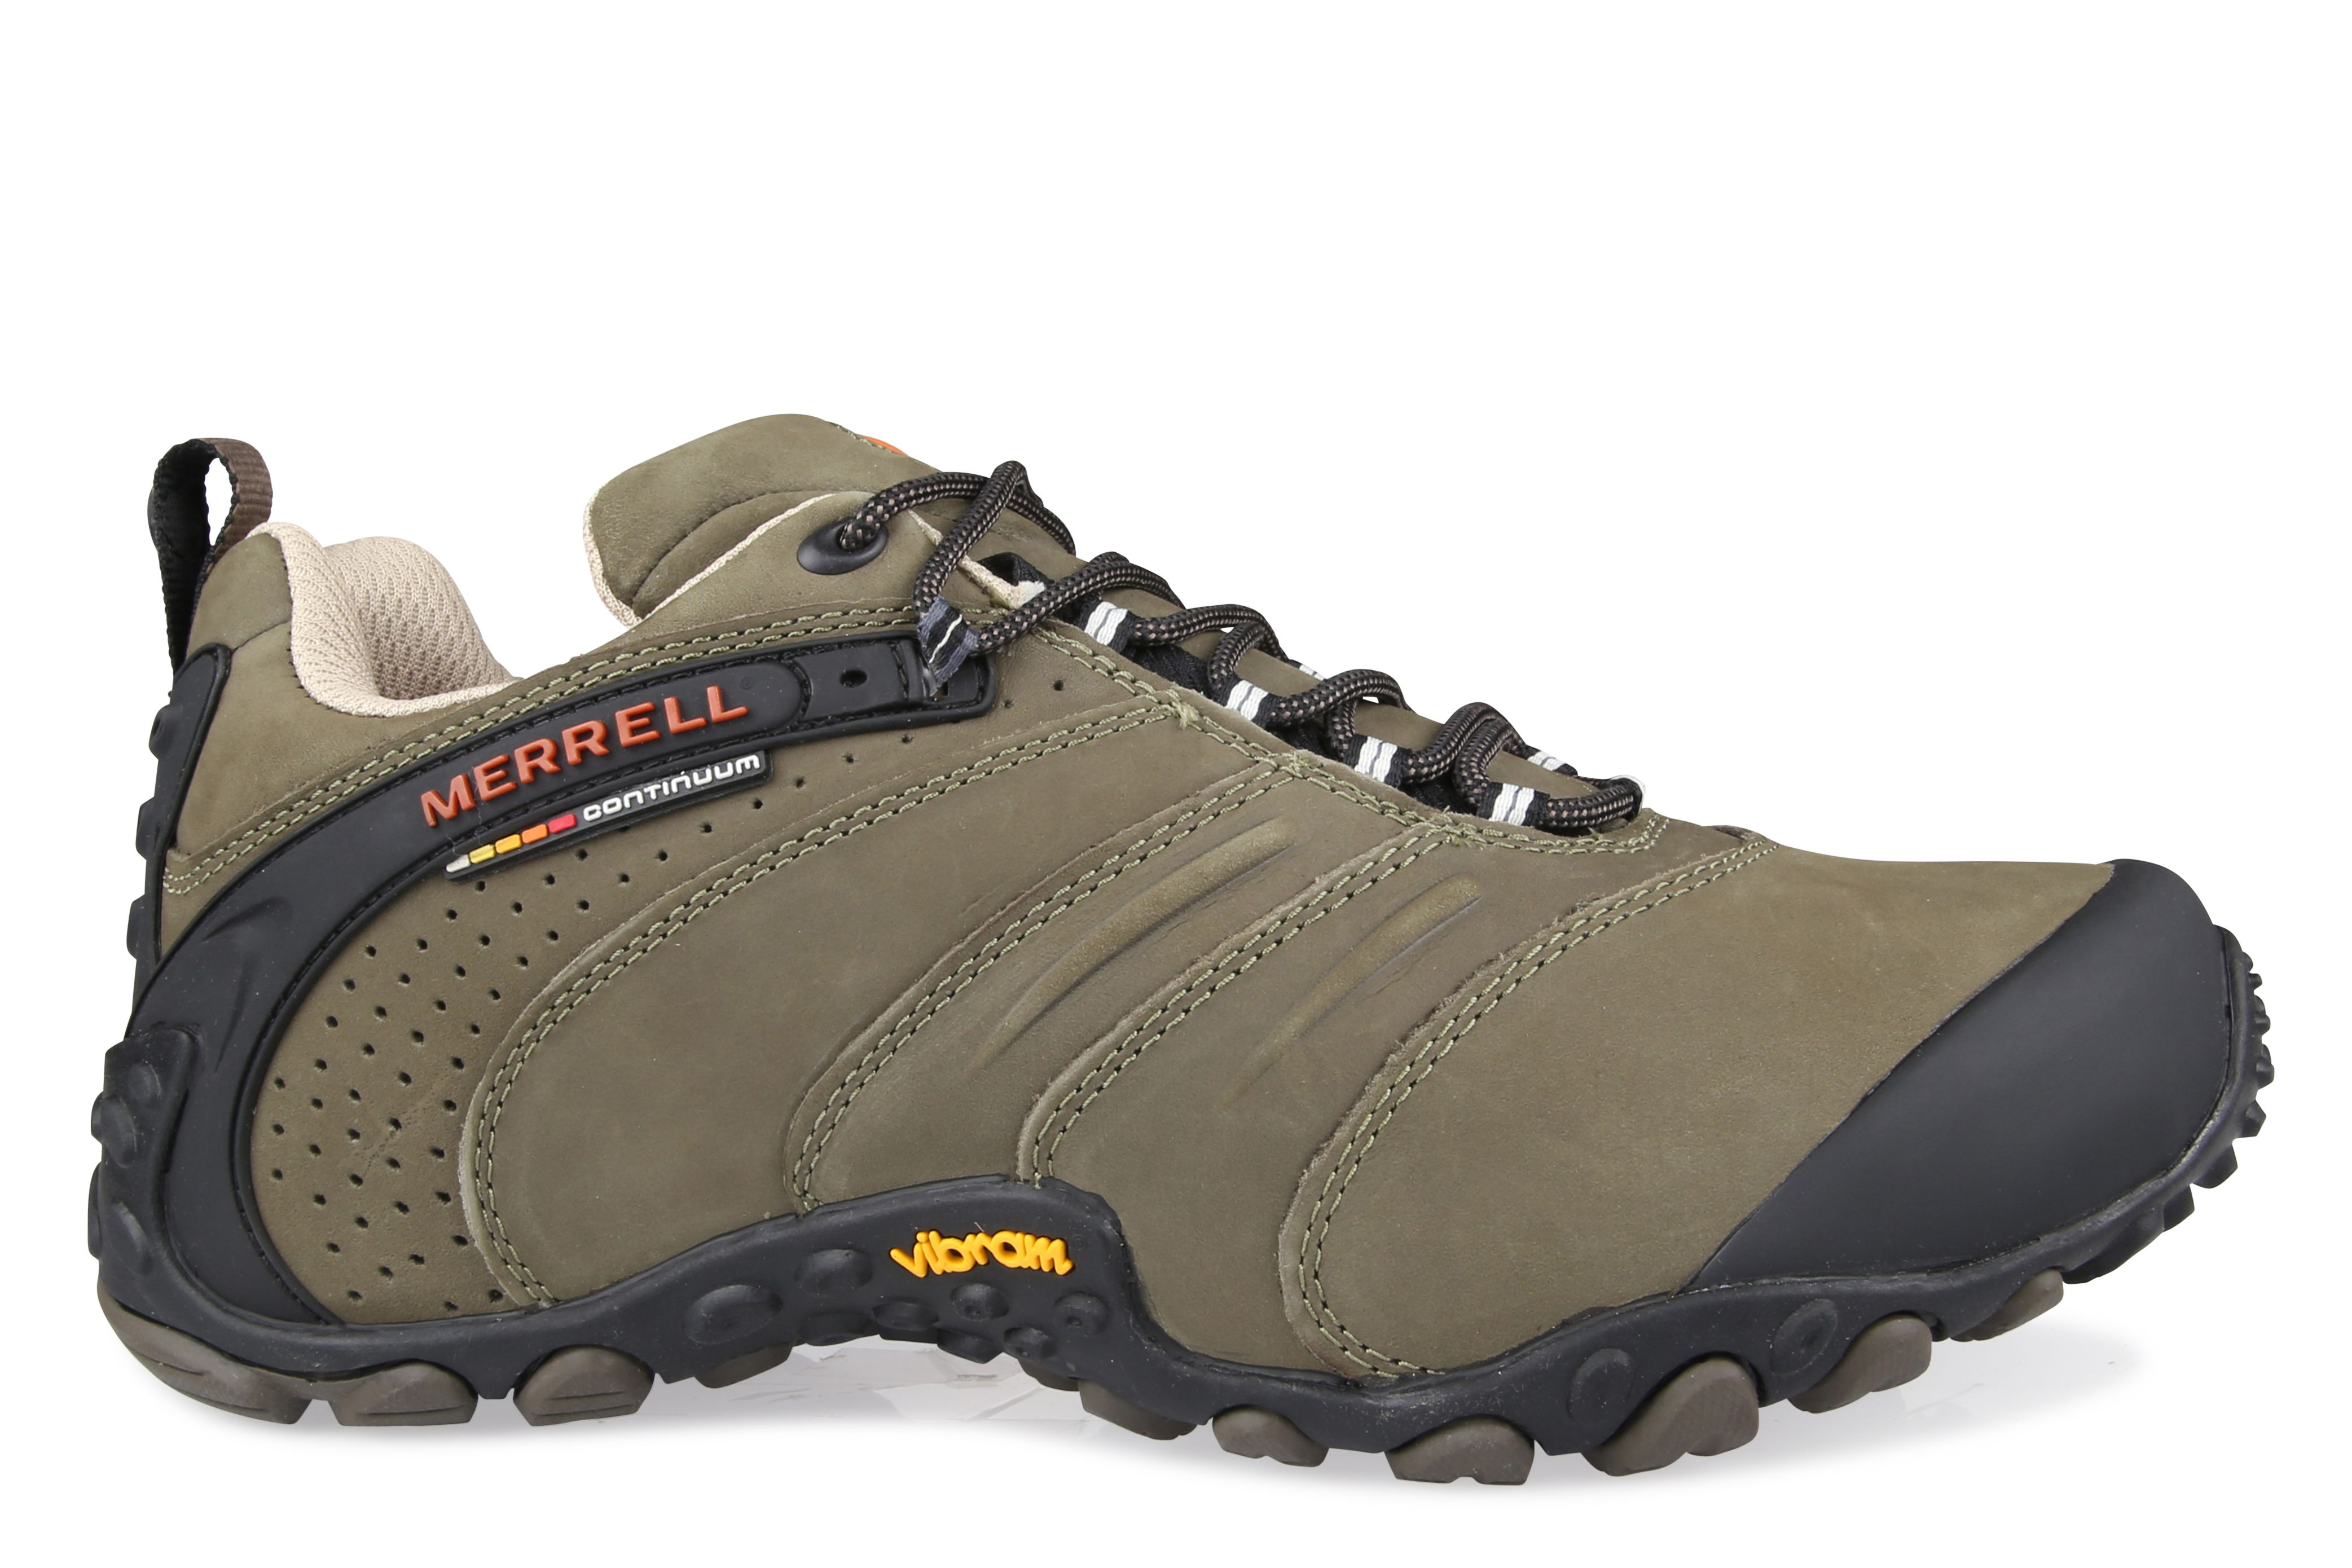 Shoe Connection Merrell Chameleon 2 Winter Green Hiking Boot 279 99 Https Www Shoeconnection Co Nz Mens Snea Merrell Shoes Mens Leather Shoes Men Shoes